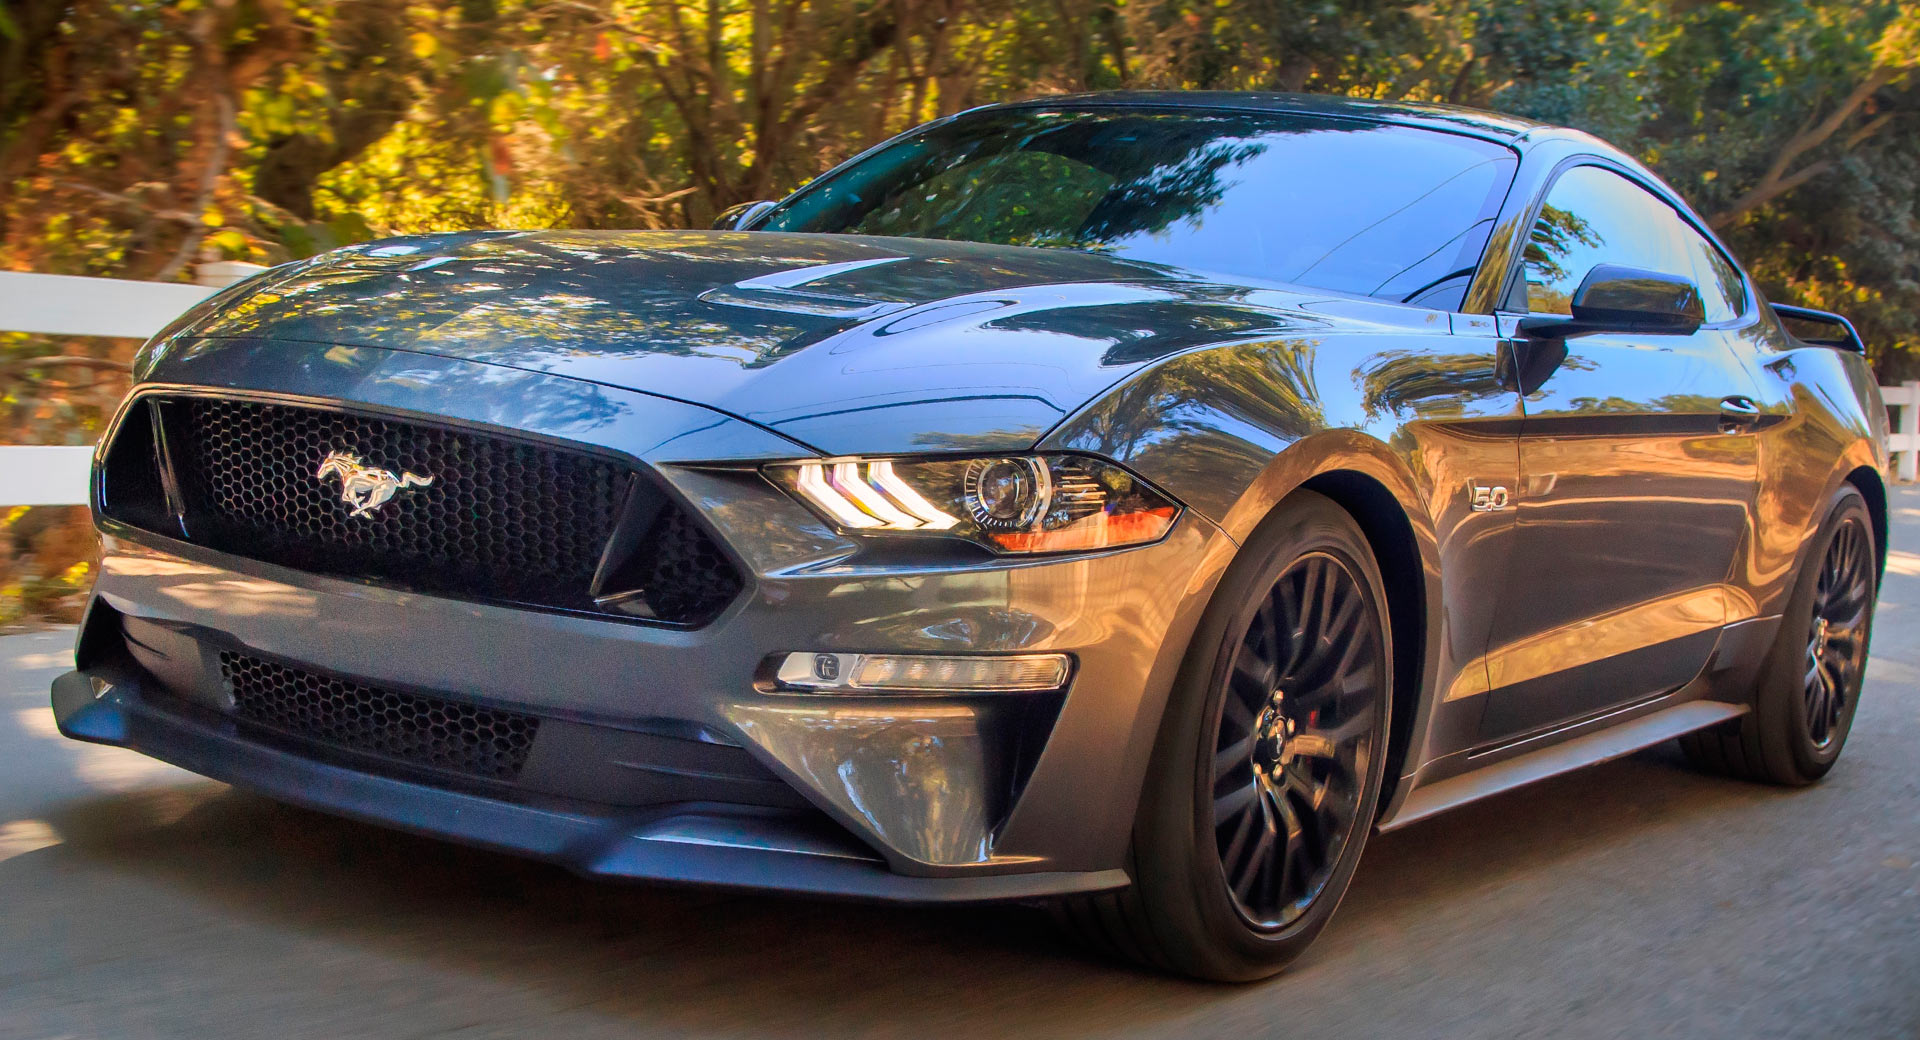 39 995 Can Buy A 2019 Ford Mustang Gt With 800 Hp Carscoops